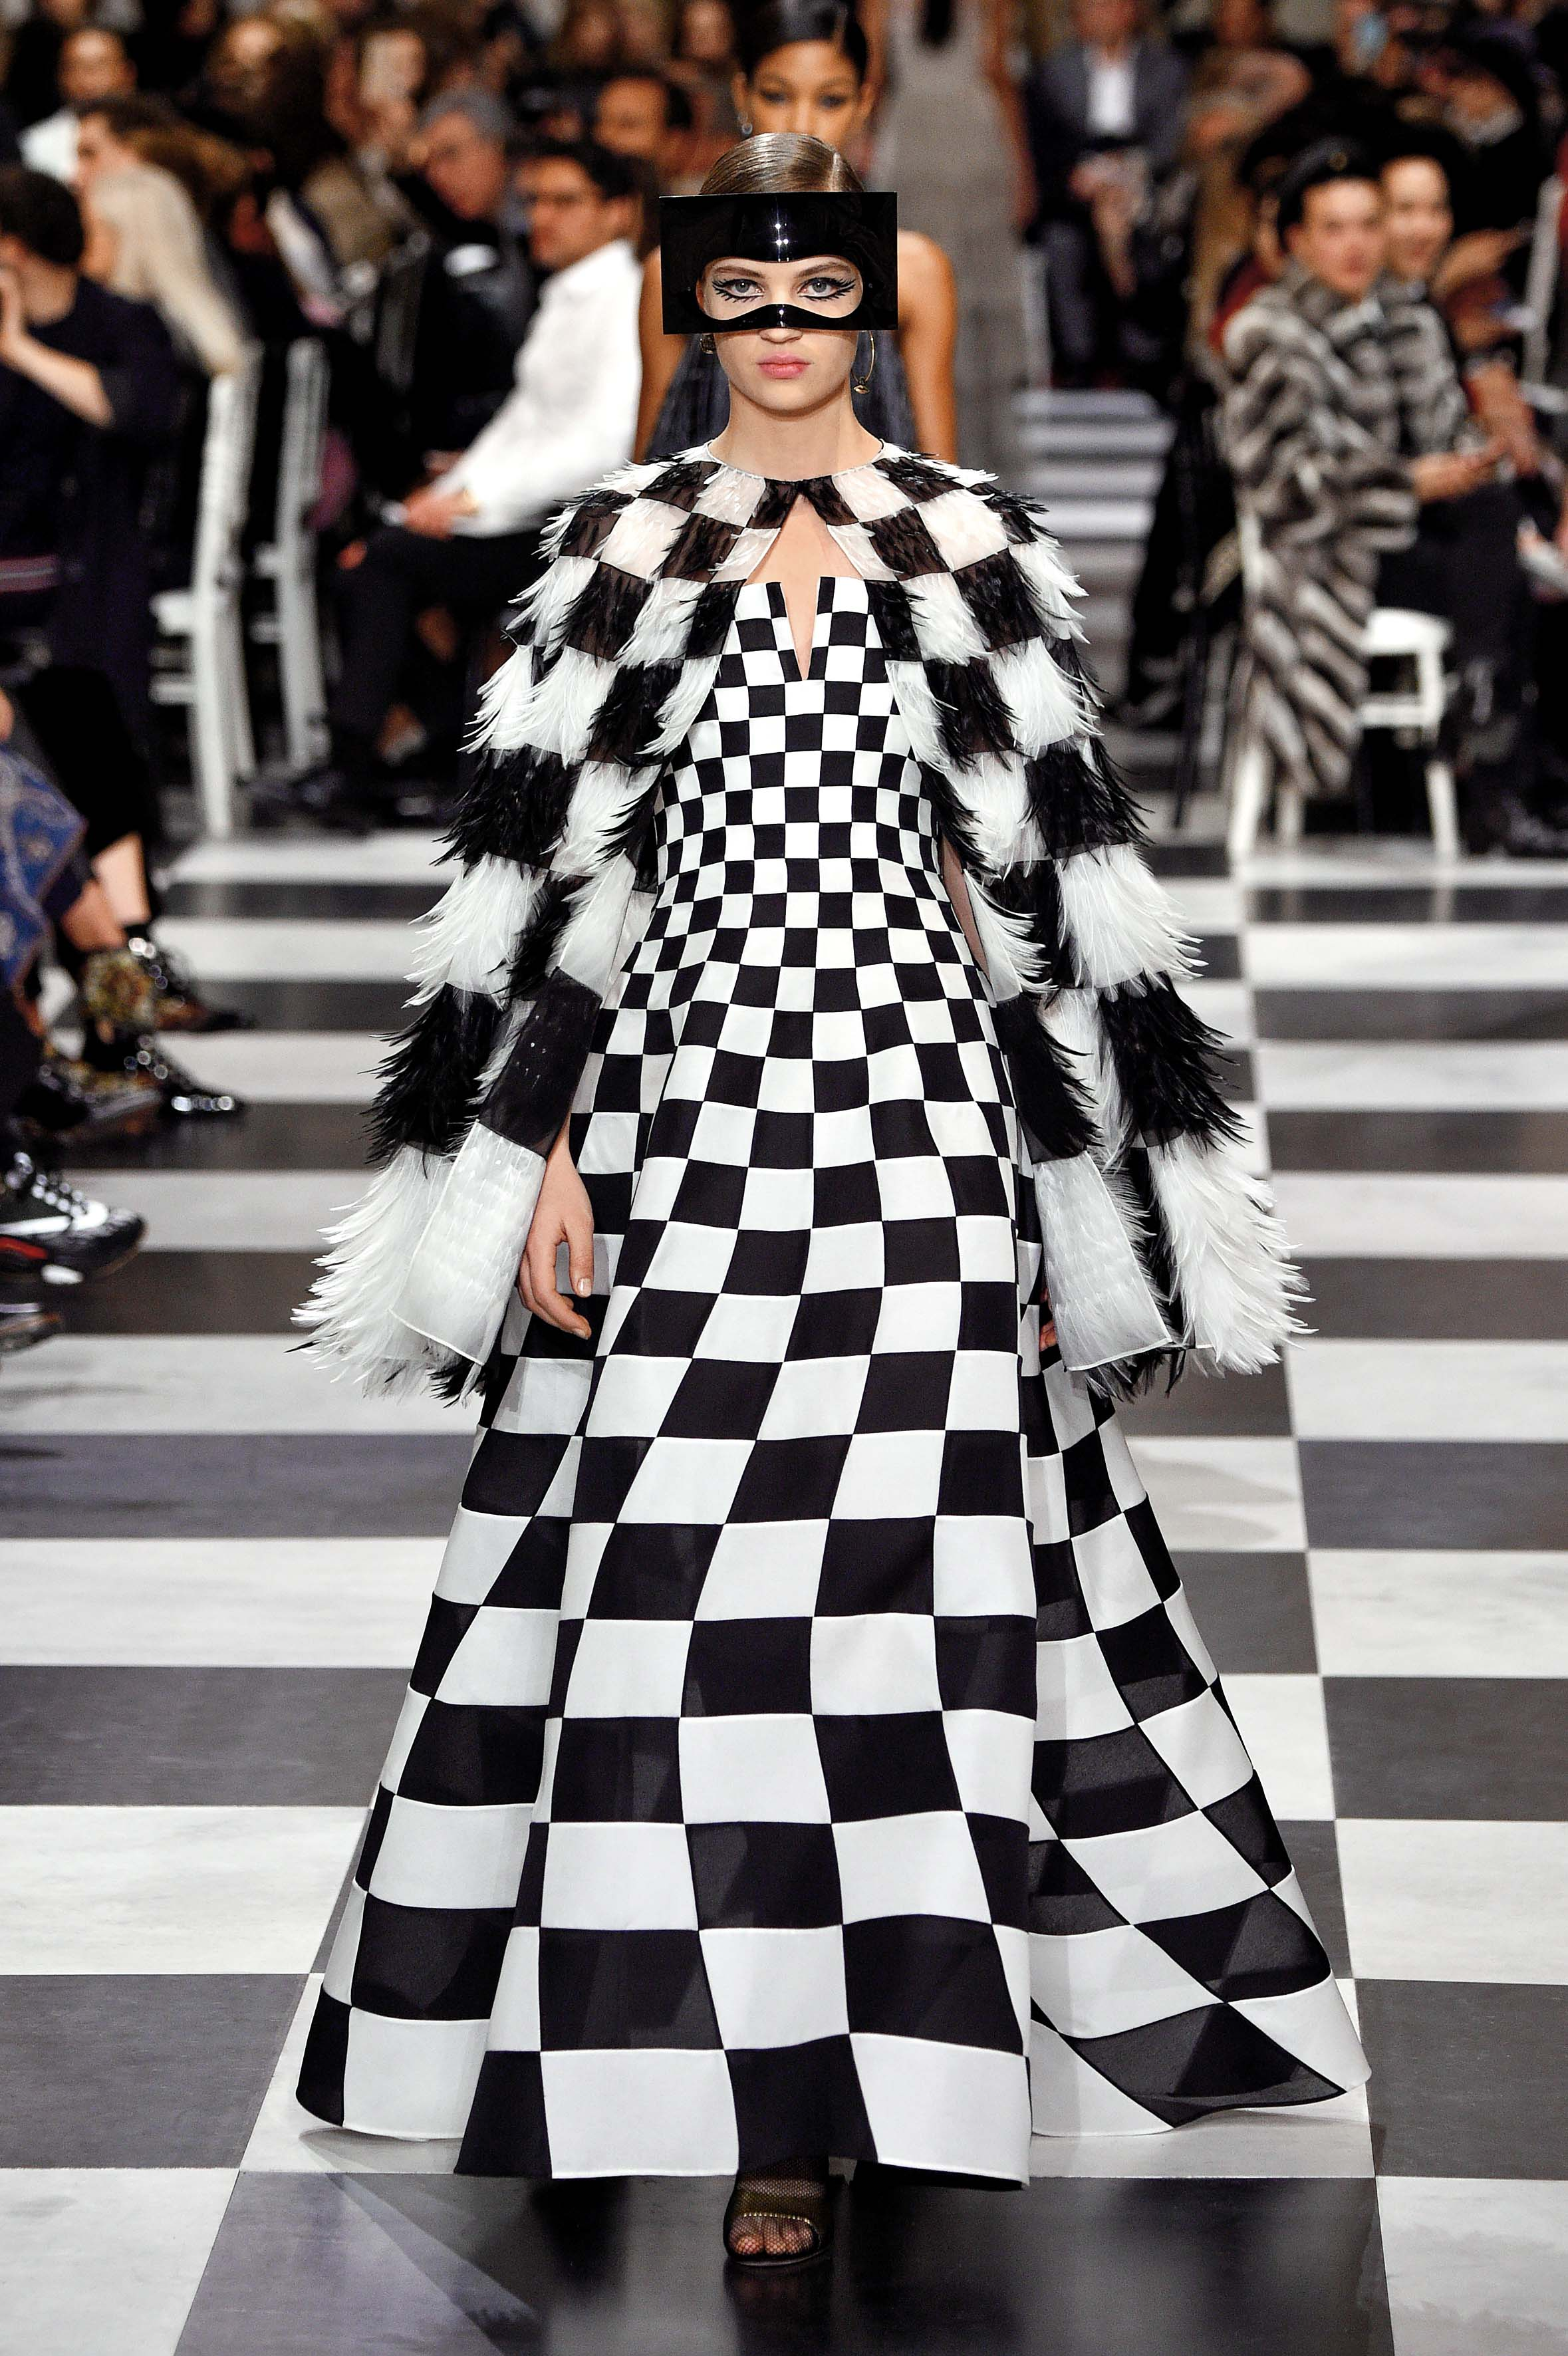 PARIS, FRANCE - JANUARY 22:  Adrienne Juliger walks the runway during the Christian Dior Spring Summer 2018 show as part of Paris Fashion Week on January 22, 2018 in Paris, France.  (Photo by Peter White/Getty Images)